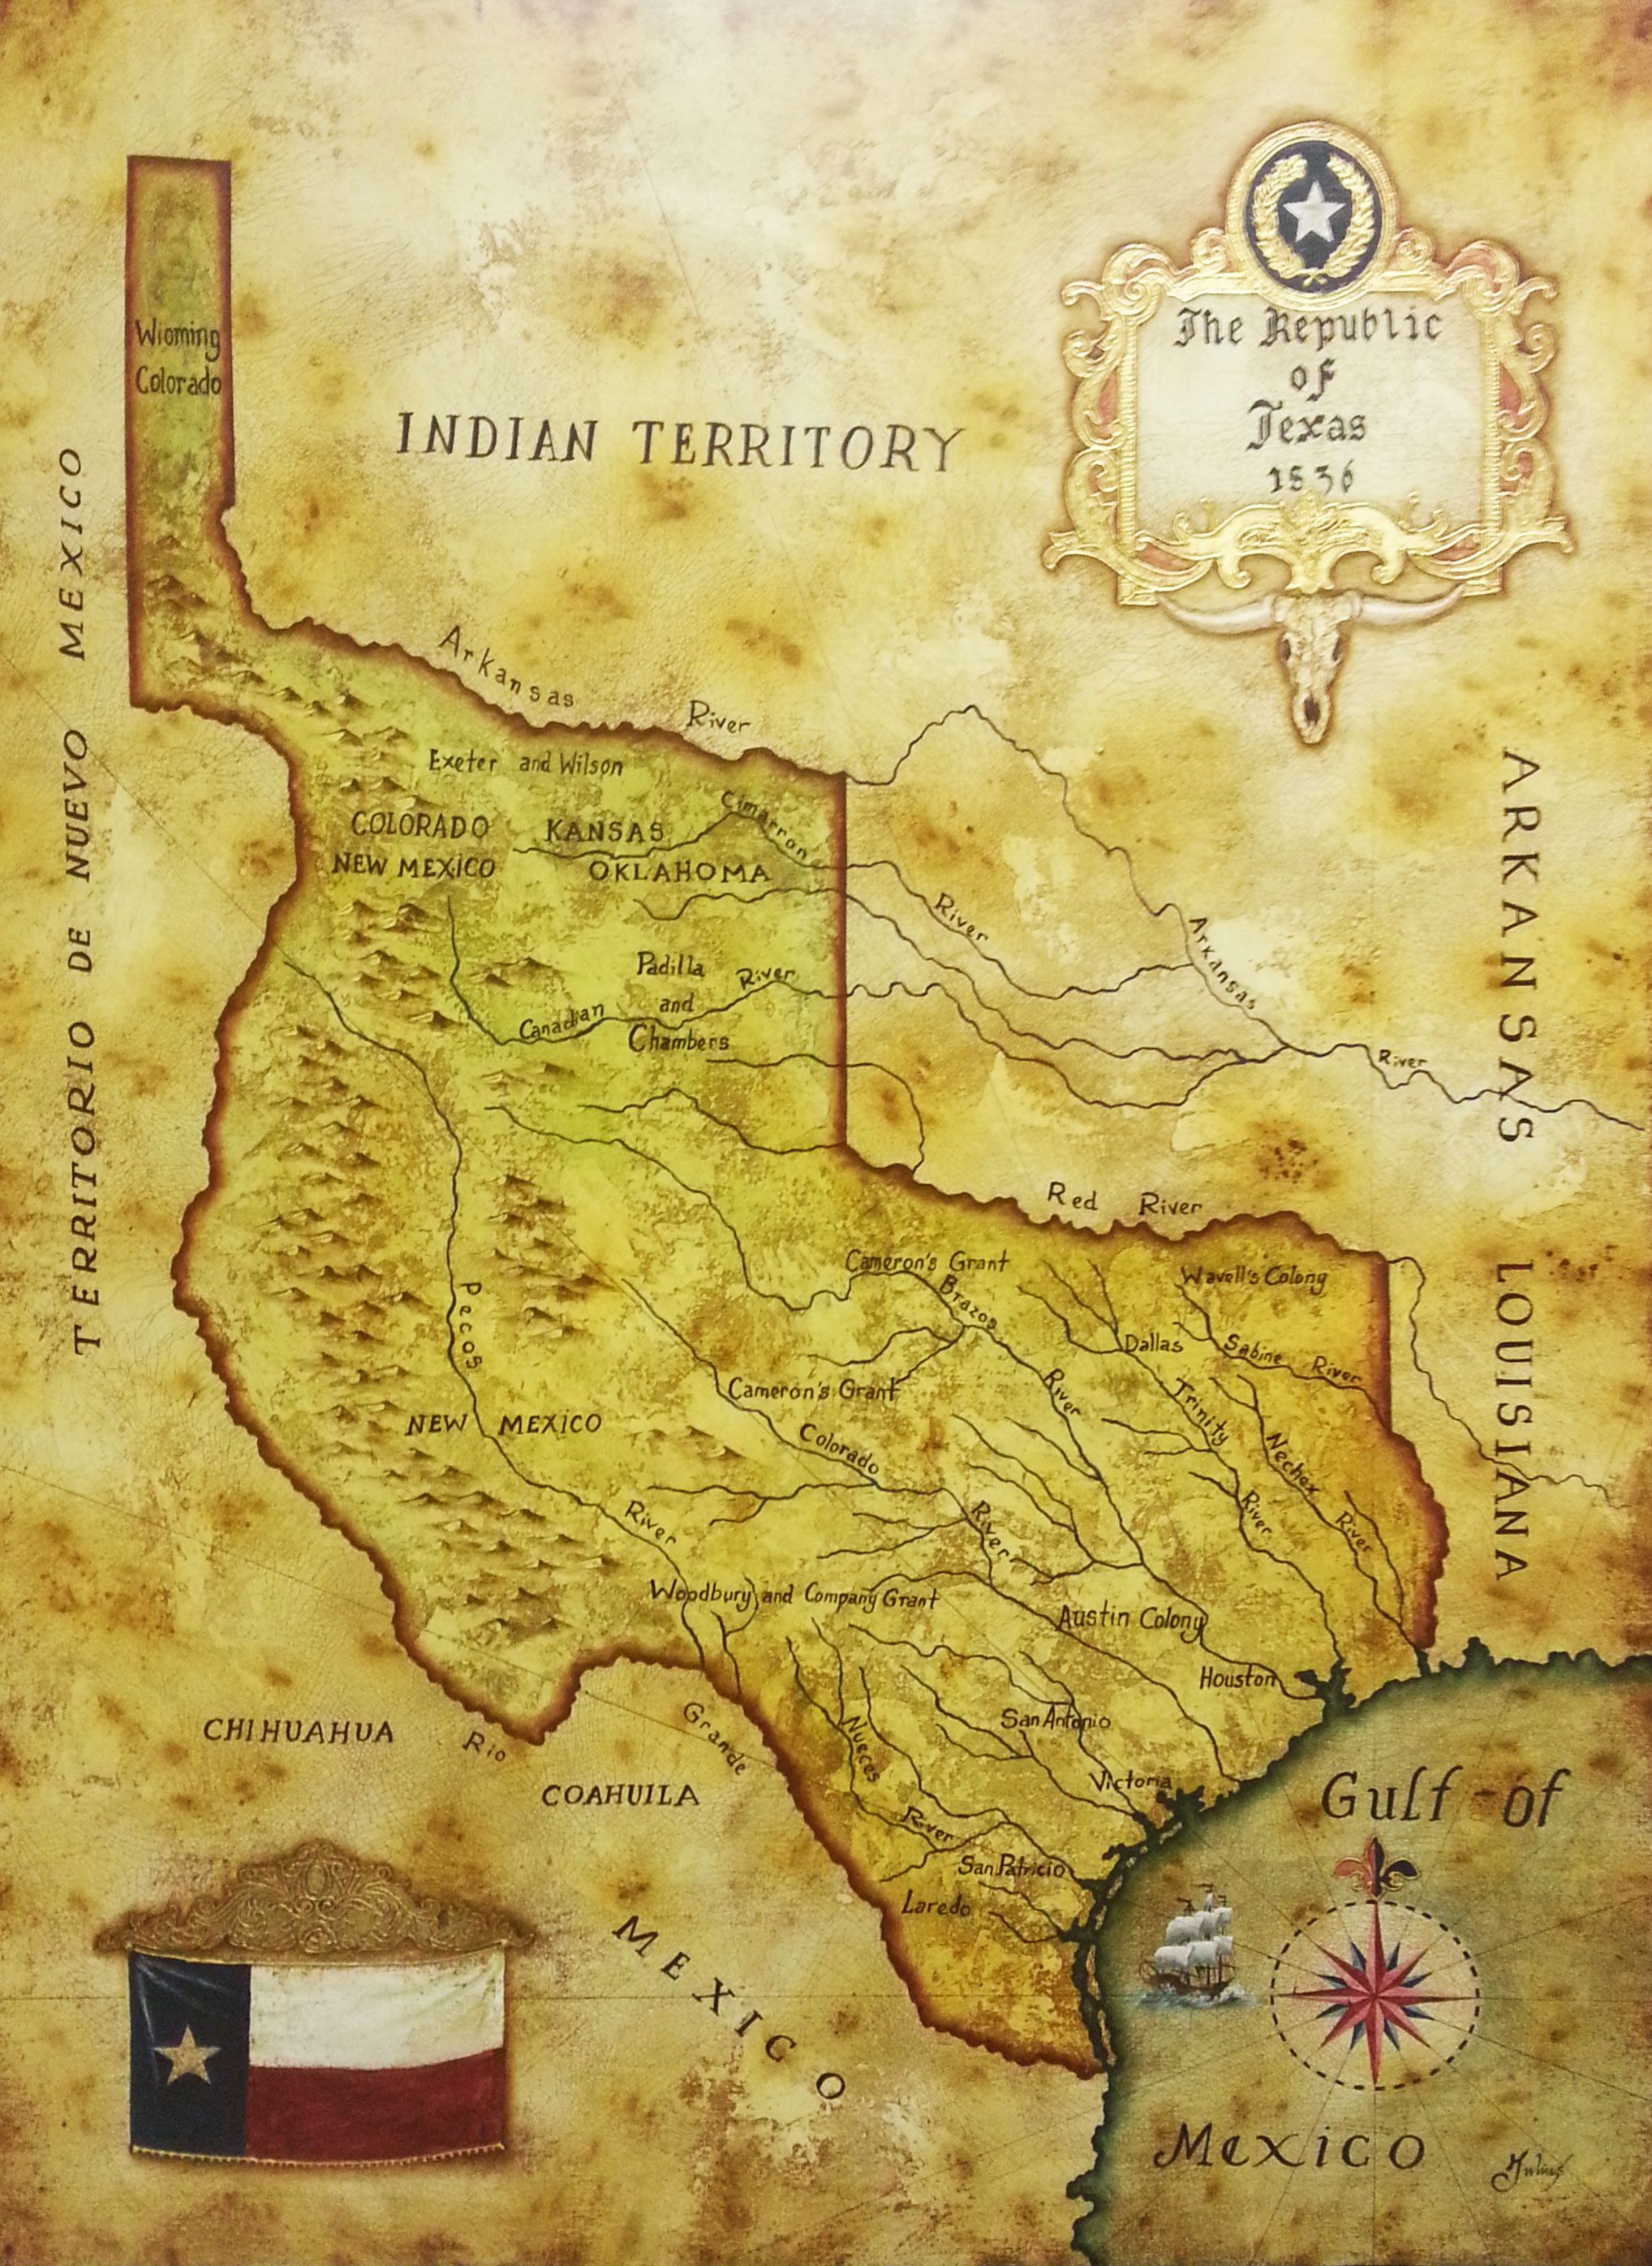 Map Of Texas 1836.Map Of Republic Of Texas 1836 By Julius Lira Salazar In 2019 Texas